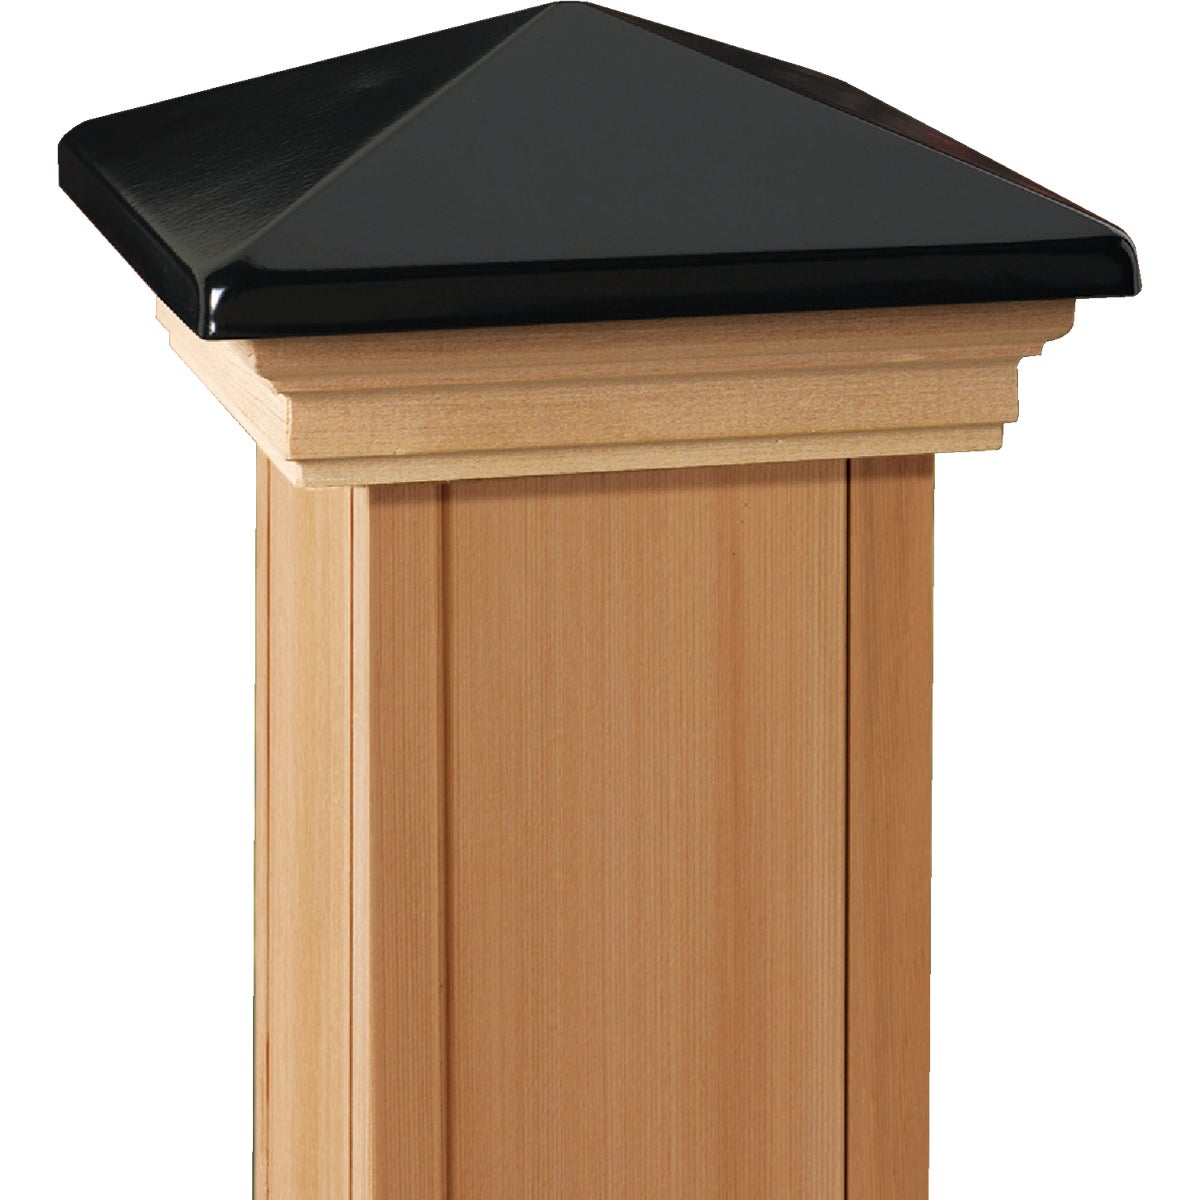 6X6 BLK/CDR VCT POST CAP - 72397 by Ufpi   Deckorators